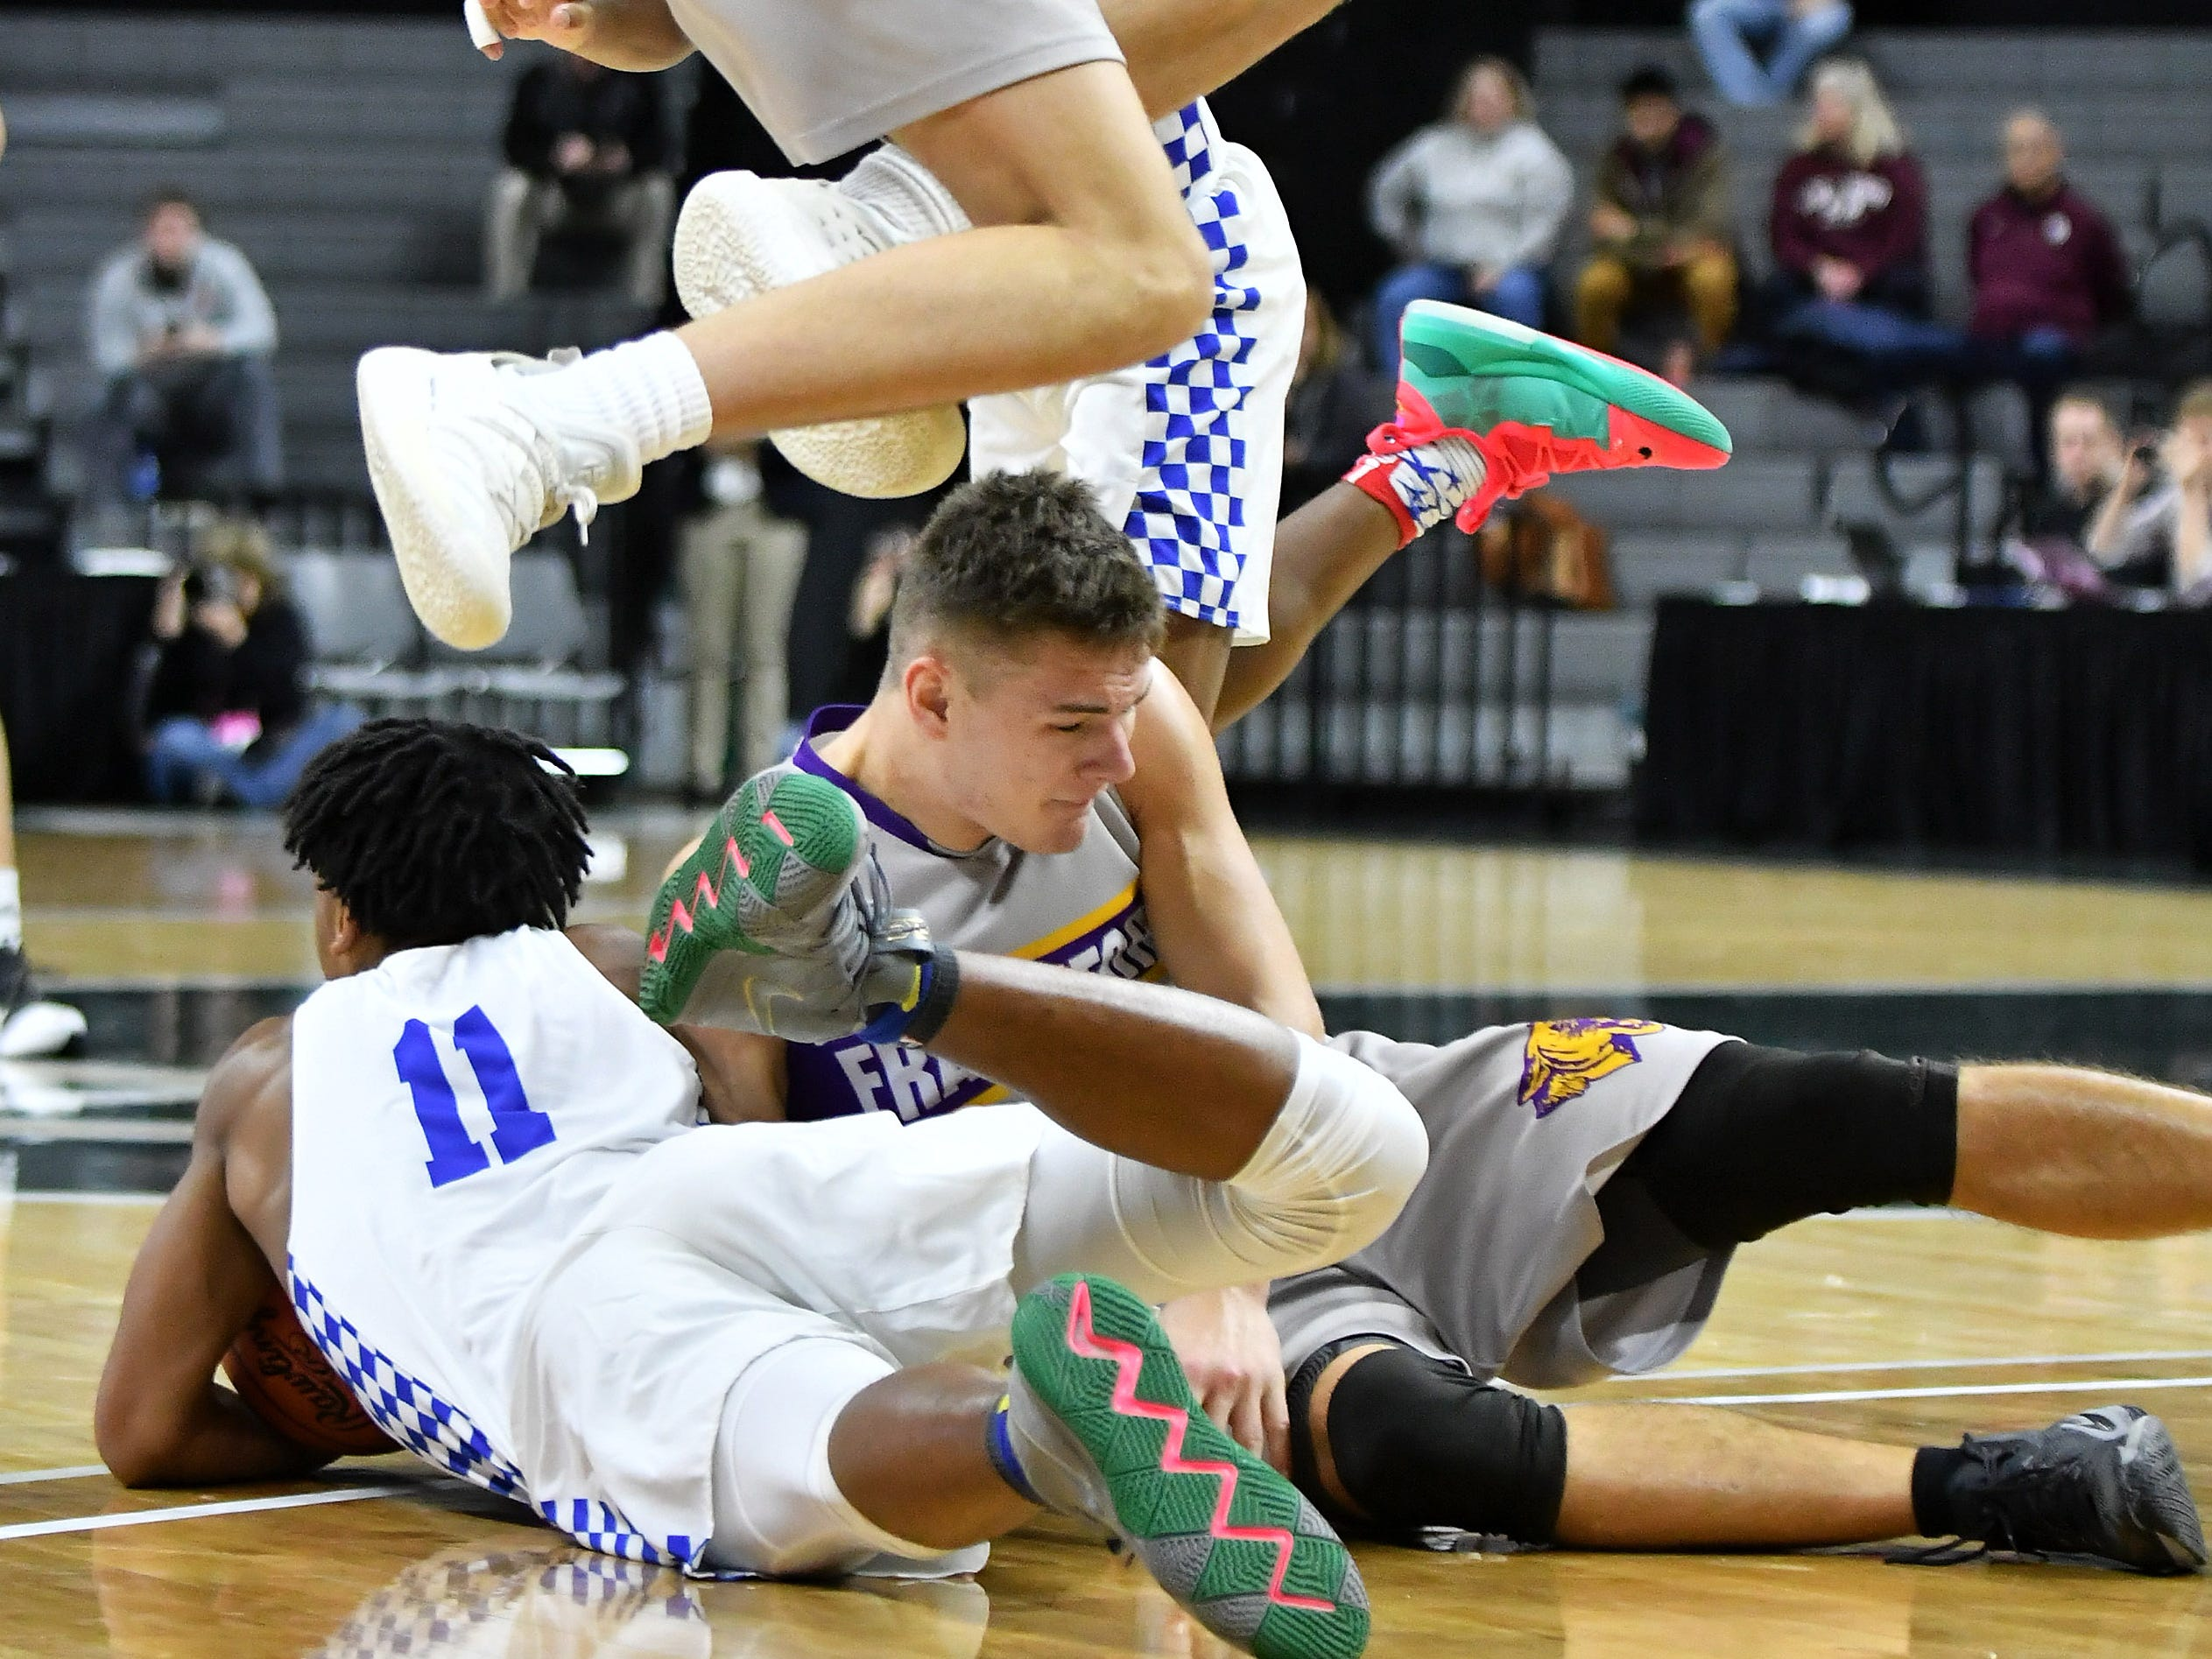 Frankfort forward Luke Hammon hops over Southfield Christian forward Malcolm King battling for a loose ball in the first half.